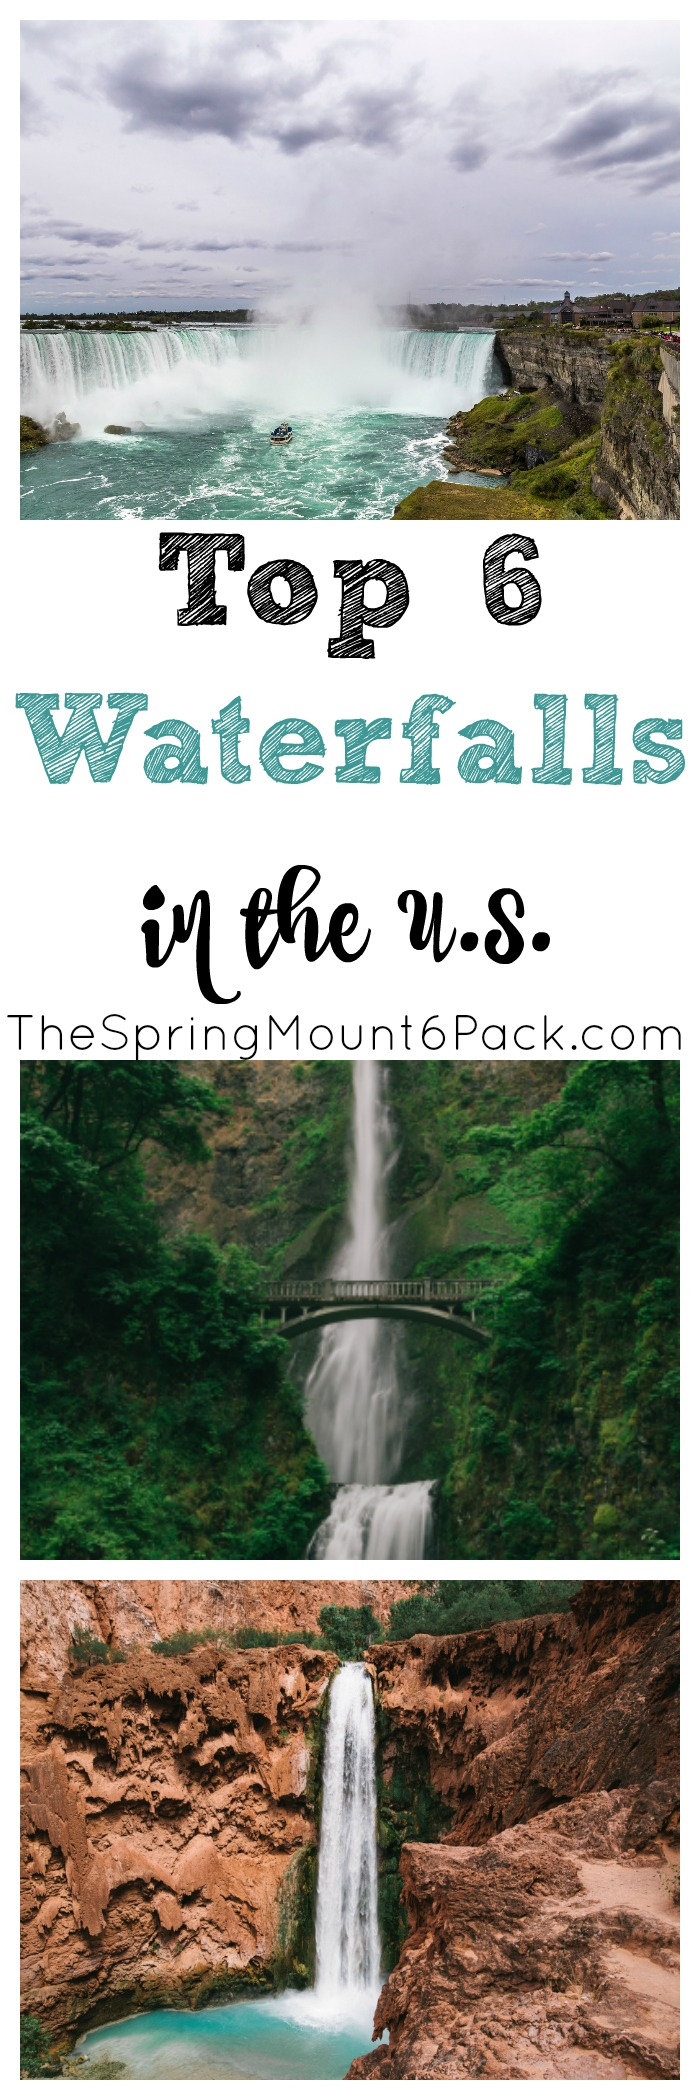 There is something majestic about waterfalls. So where can you find the most beautiful waterfalls in the US? Check out the top 6 waterfalls in the US